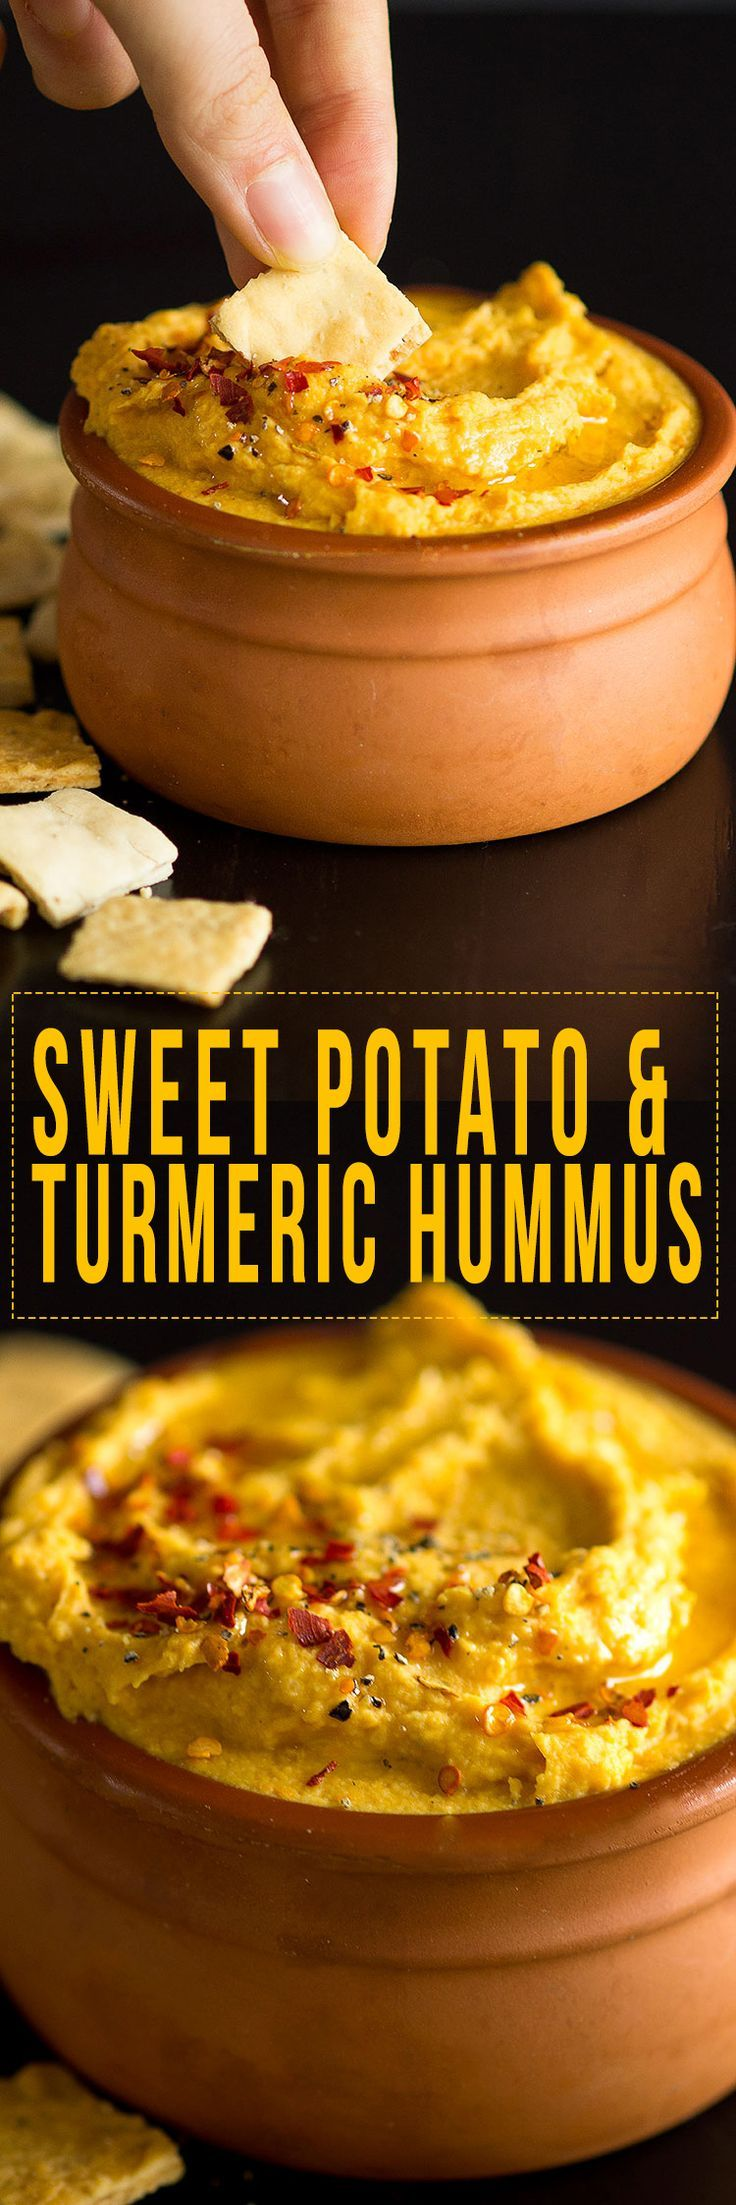 Dreamy Creamy Turmeric Sweet Potato Dip | Baked sweet potato with cannelini beans, tahini, garlic and spices to make the most delicious creamy dip!